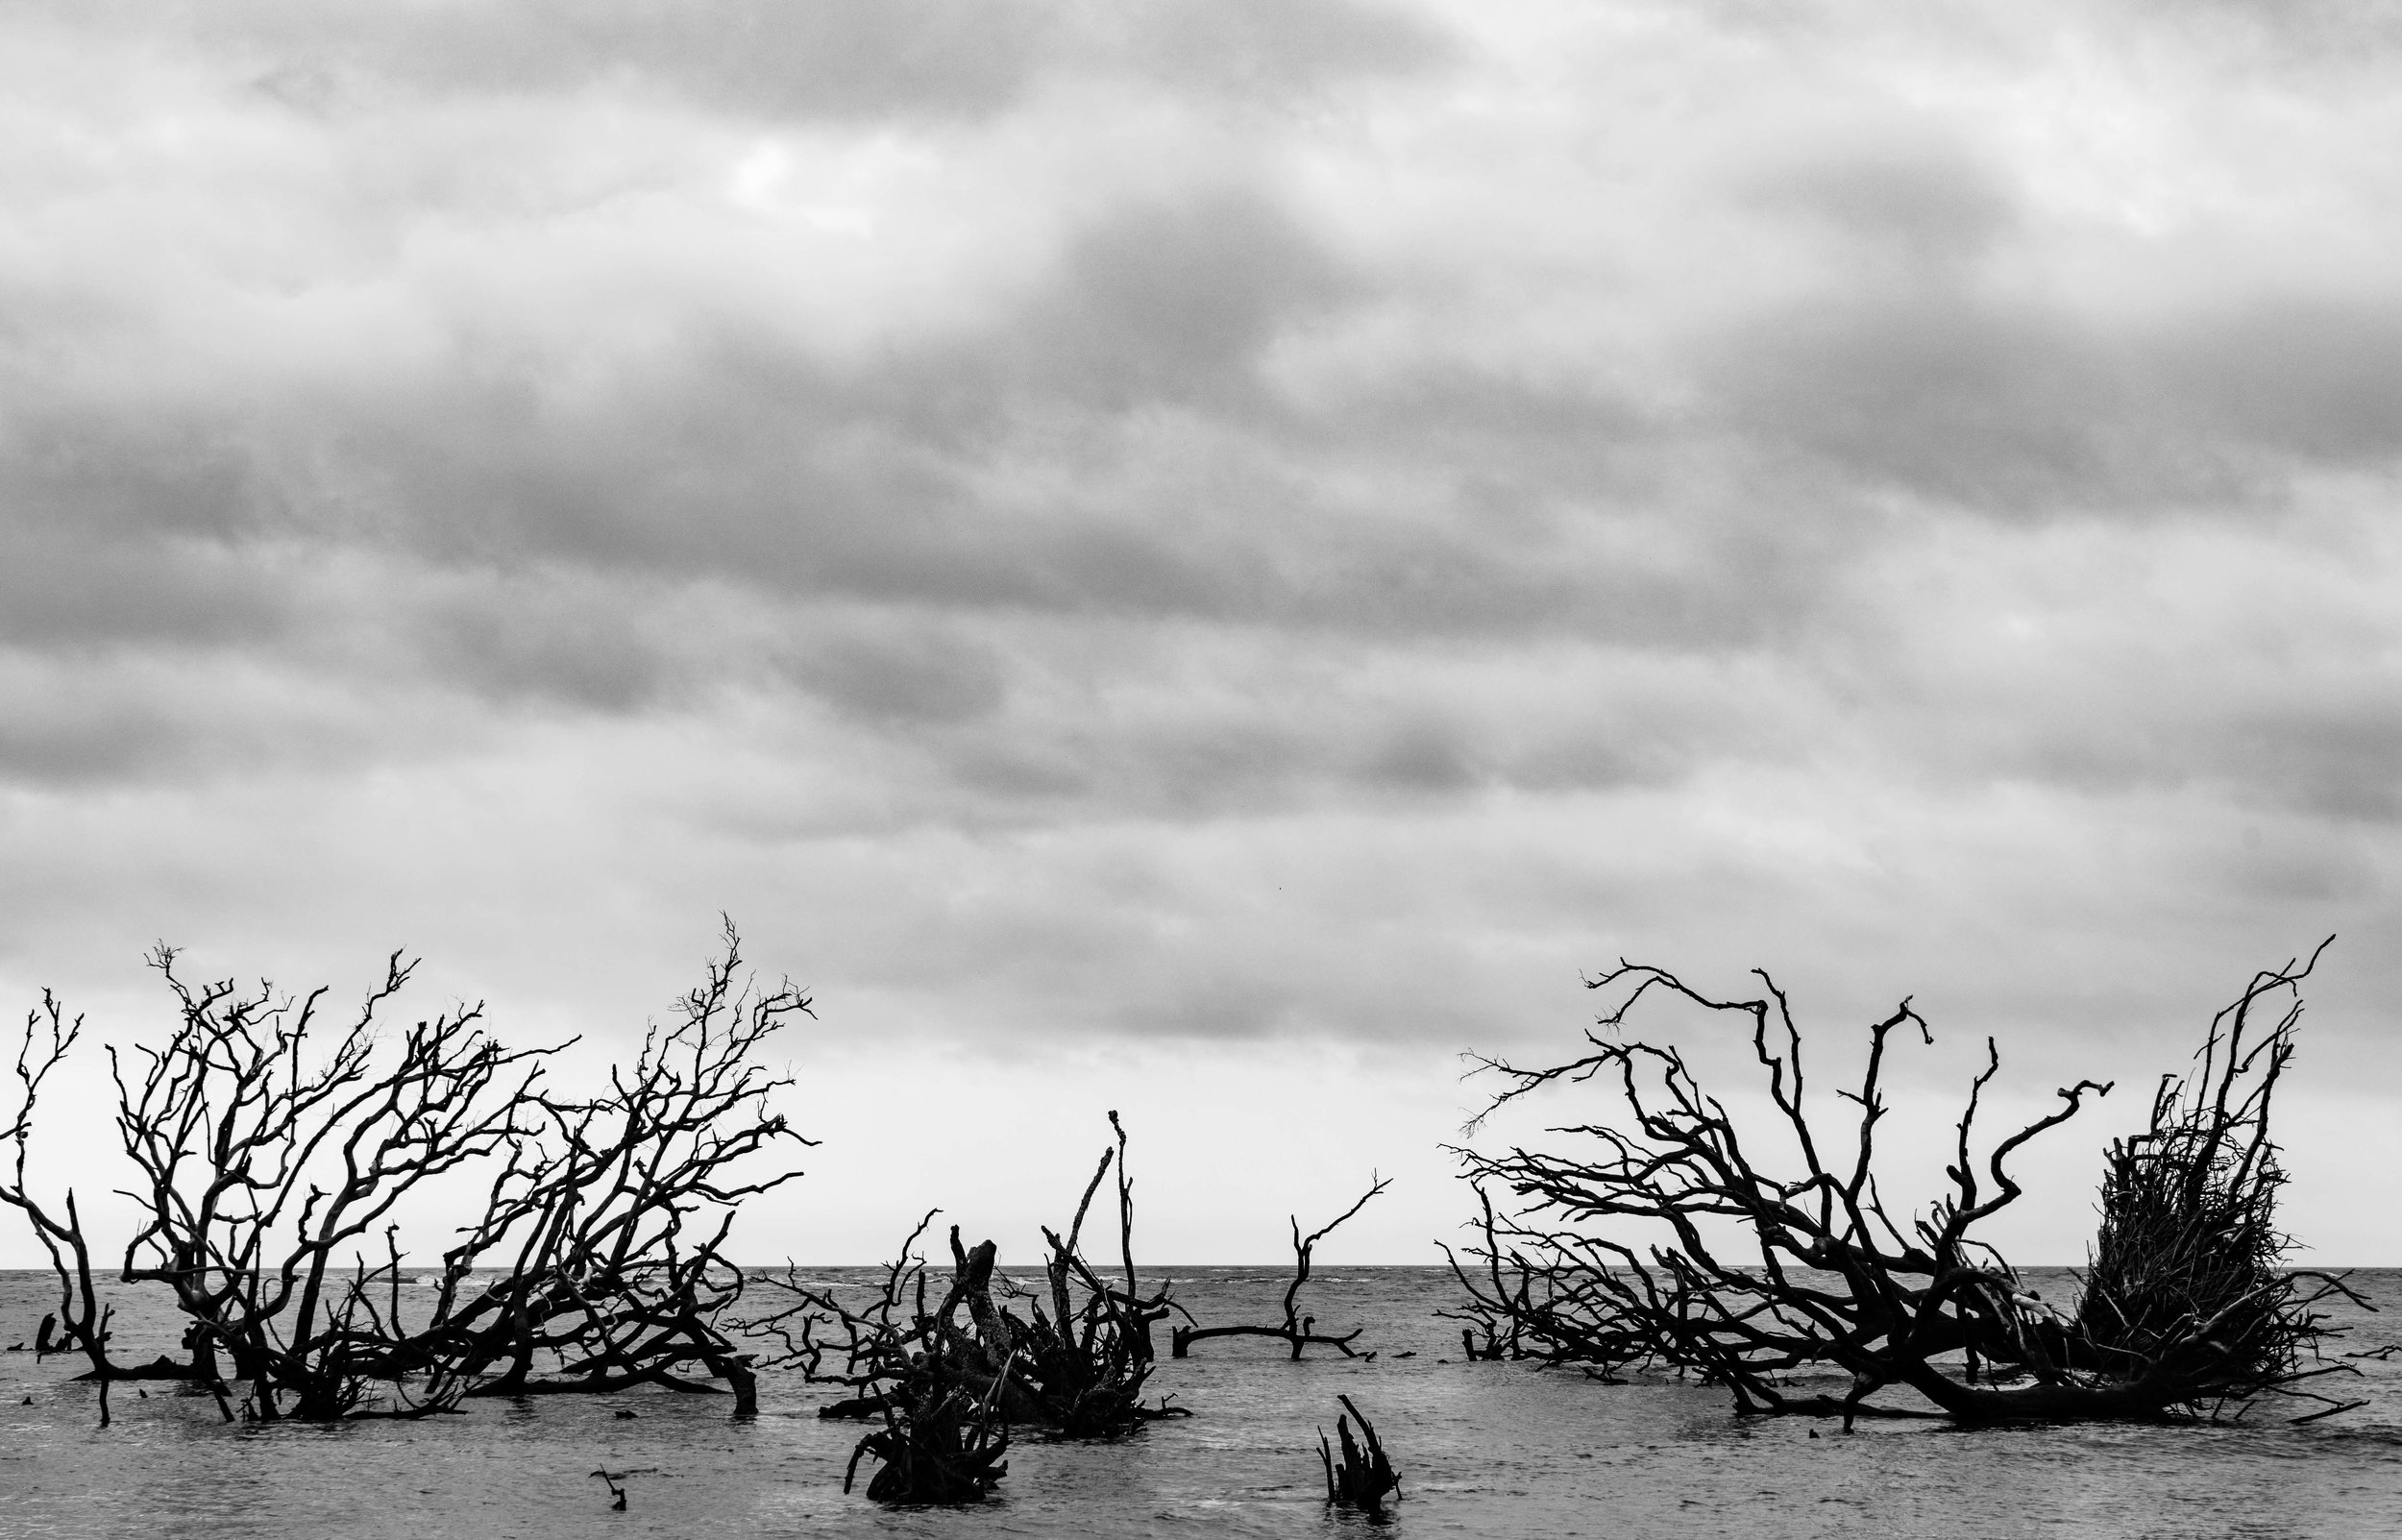 Tree graveyard off the coast of Little Tybee Island via micahdeyoung.com